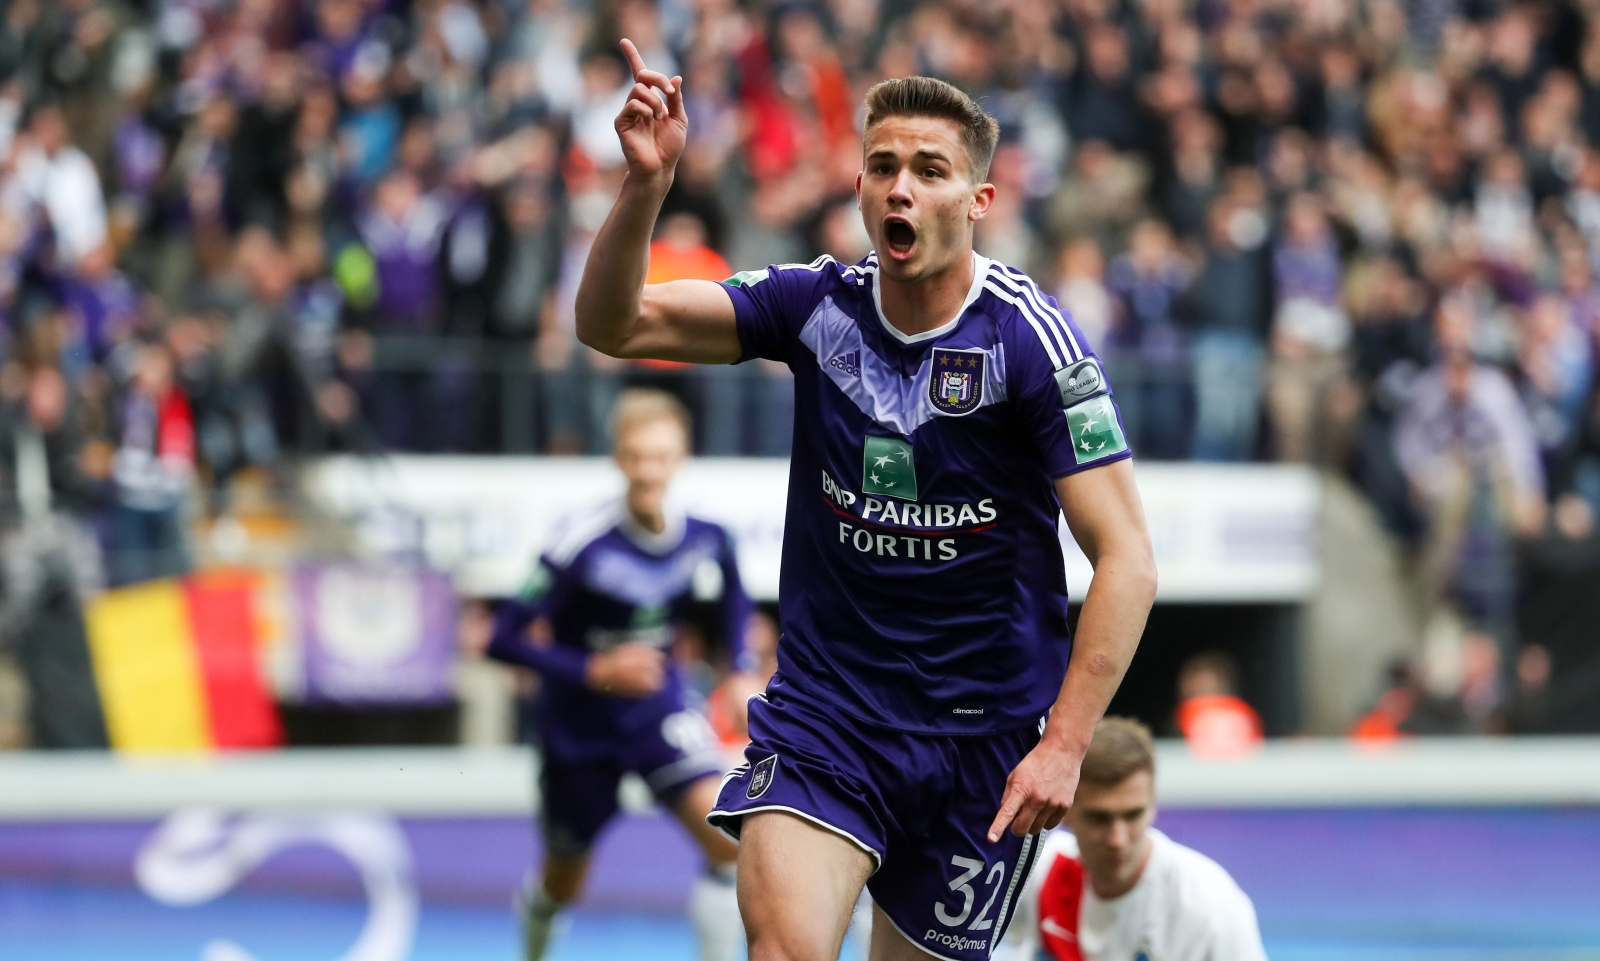 You Can Do Better - Anderlecht Coach's Transfer Advice For West Ham Target